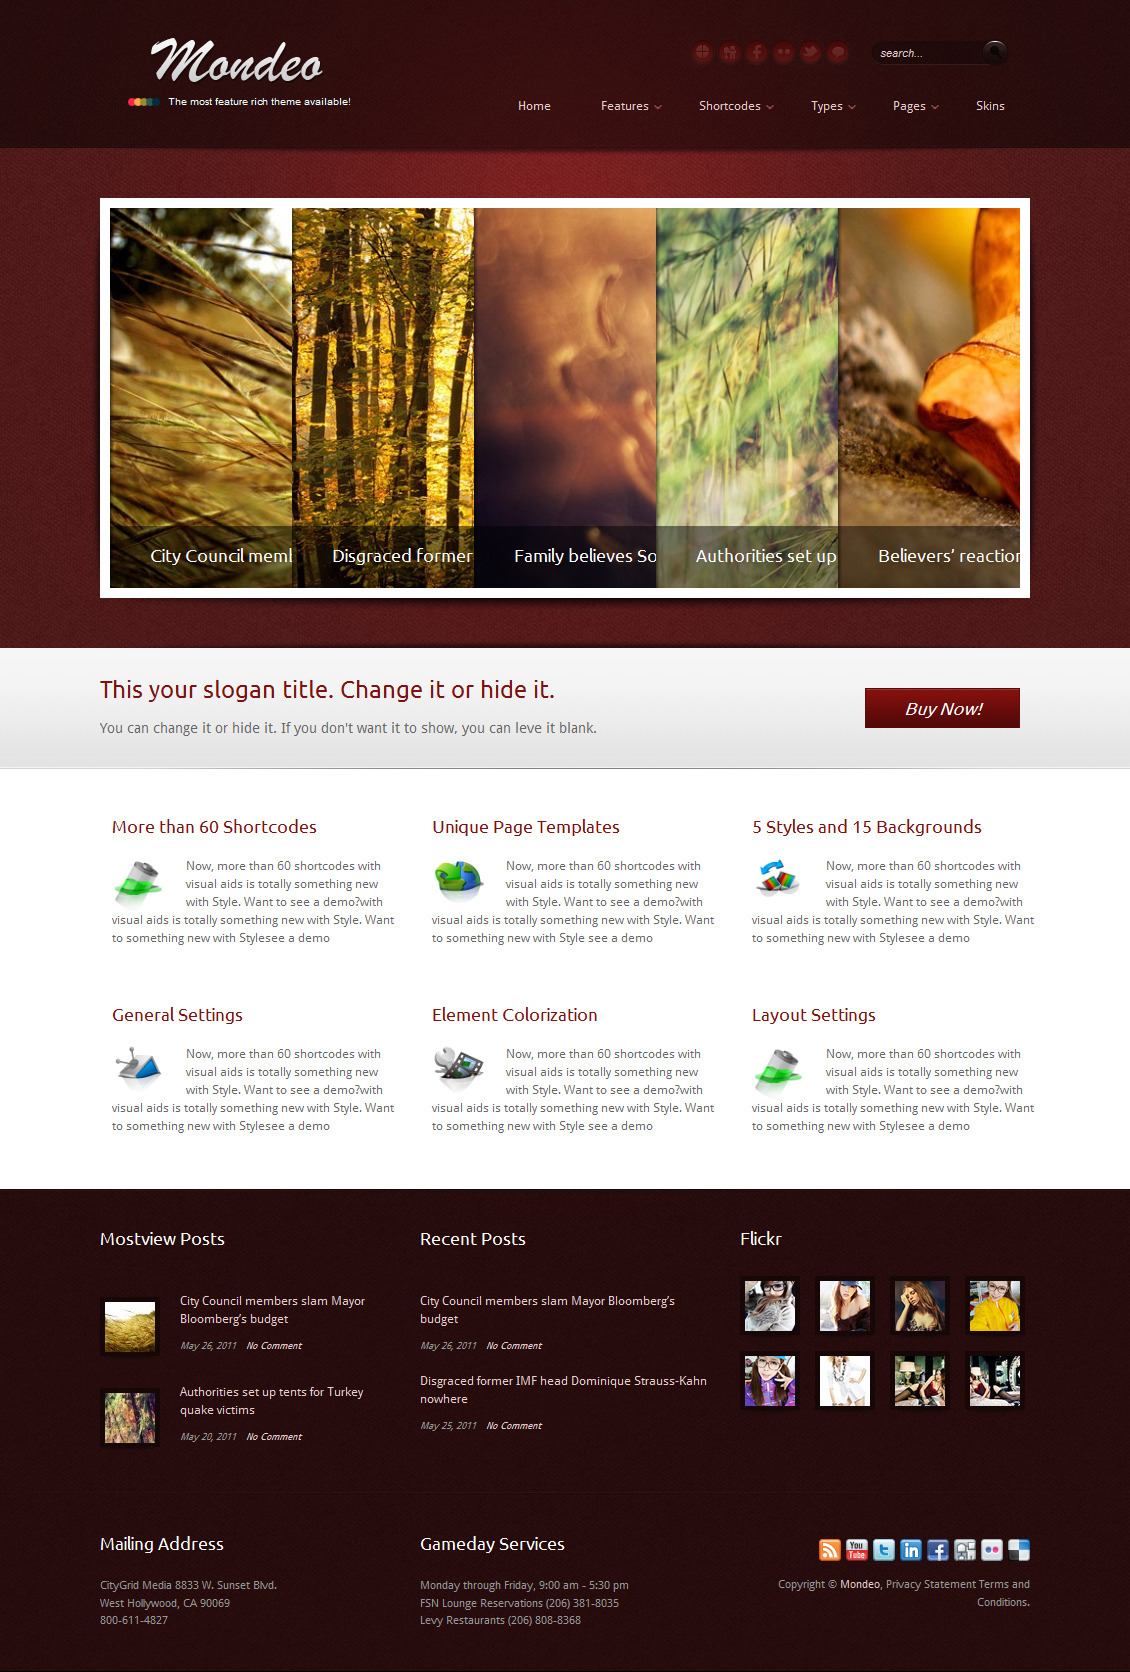 Mondeo Corporate & Portfolio WordPress Theme - The homepage template 6.